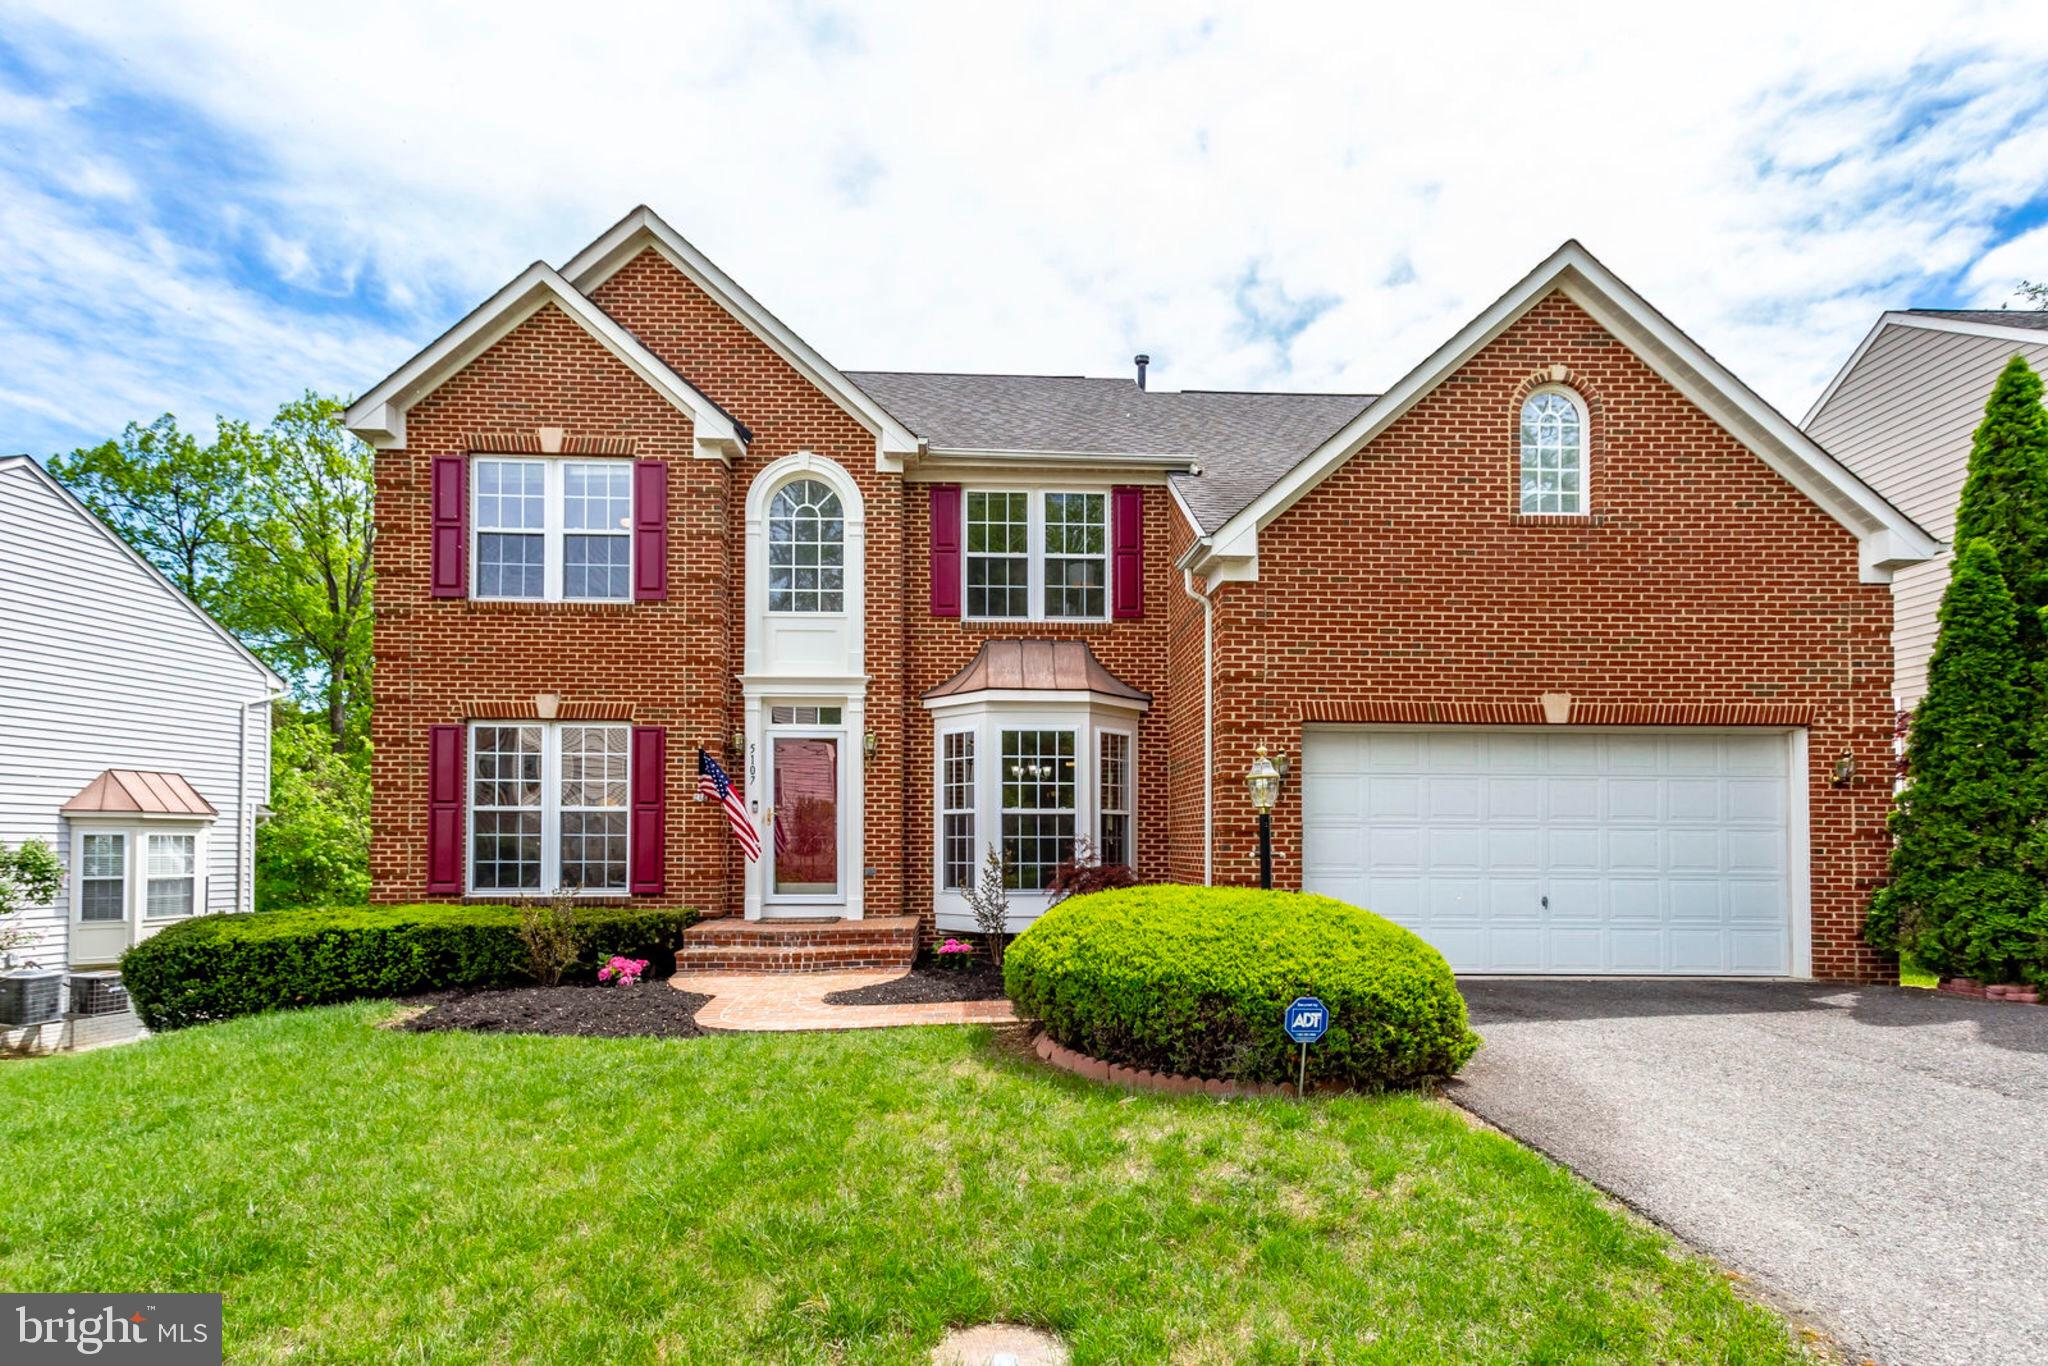 Your search is over! This beautiful, sun-filled 4BR, 3.5 Bath home is waiting for you to create new memories. Freshly painted from top to bottom with ALL NEW door hardware and hinges,NEW ceiling fans, lighting,BRAND NEW stainless steel appliances, Newer Deck 2017 w/ transferable warranty, New brick walkway and back patio 2018, HOME WARRANTY! Super convenient location. Close to 395, Old Town, Arlington, Fort Belvoir, Tysons, Pentagon & Downtown DC.